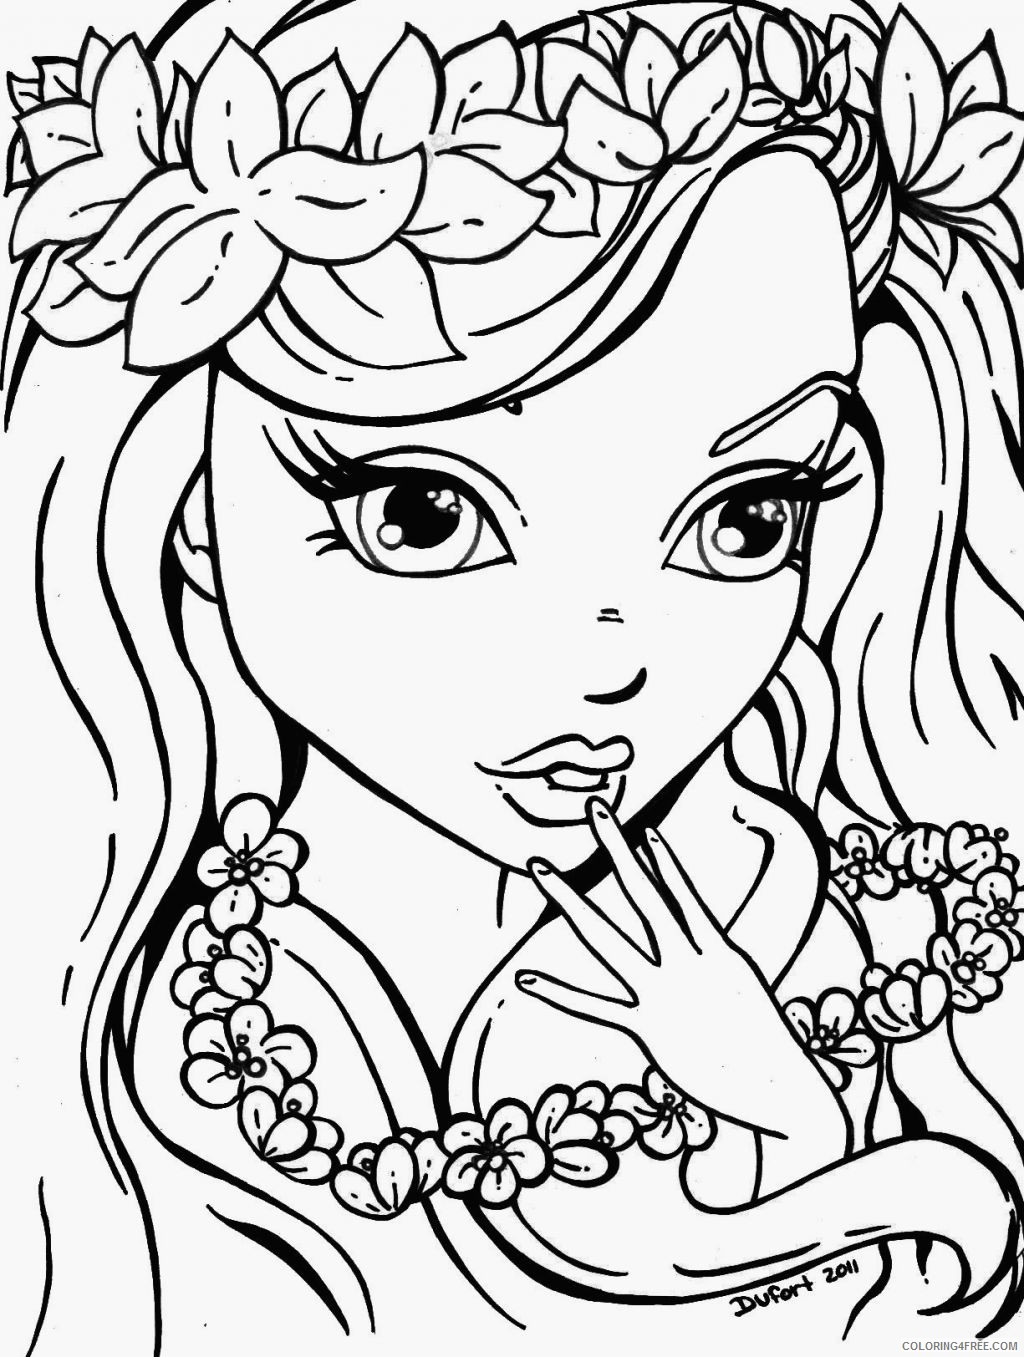 coloring pages for teens girl Coloring4free